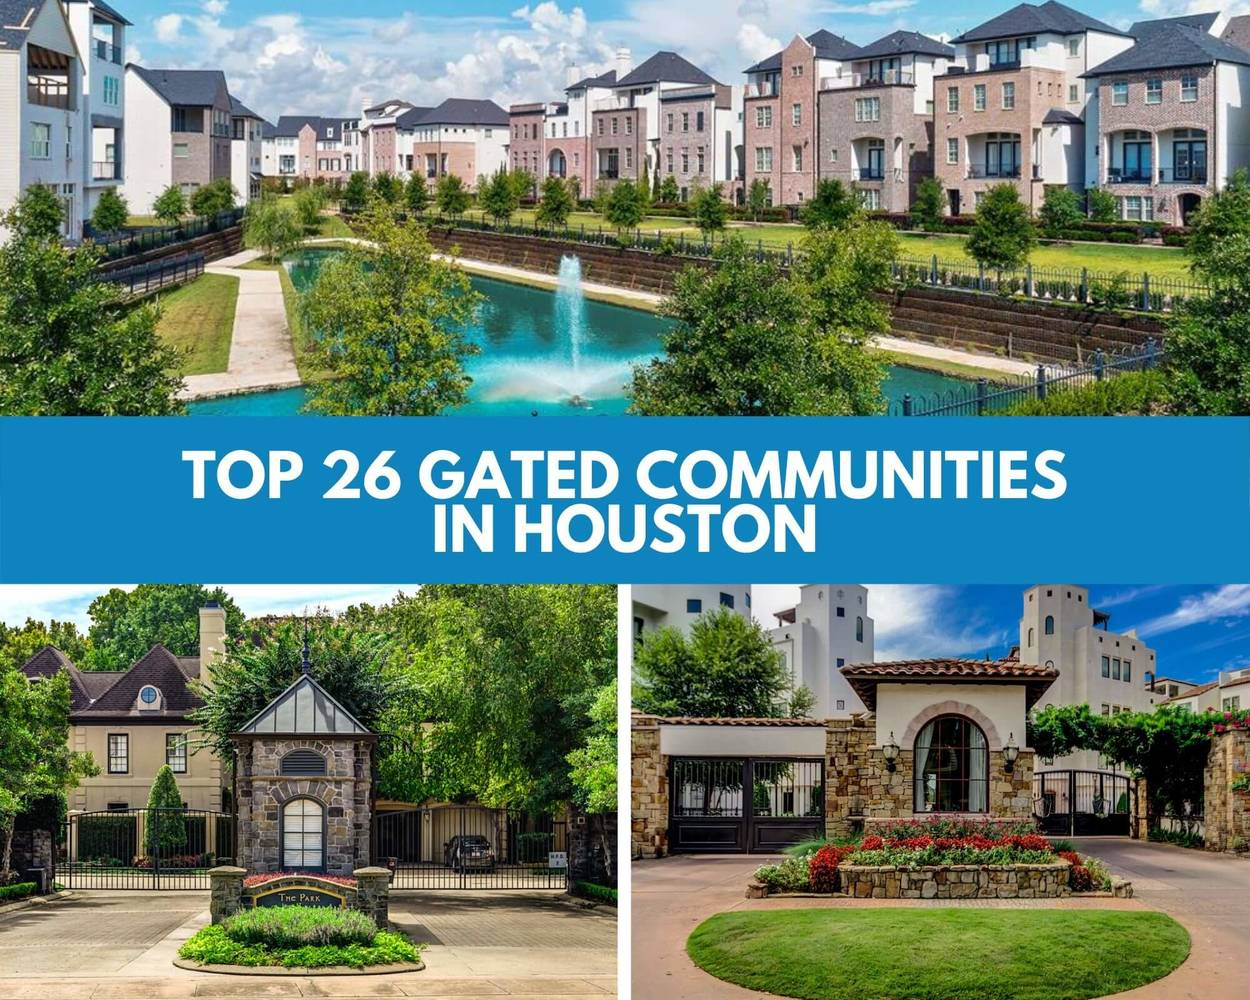 The Ultimate Guide To The 26 Best Gated Communities in Houston